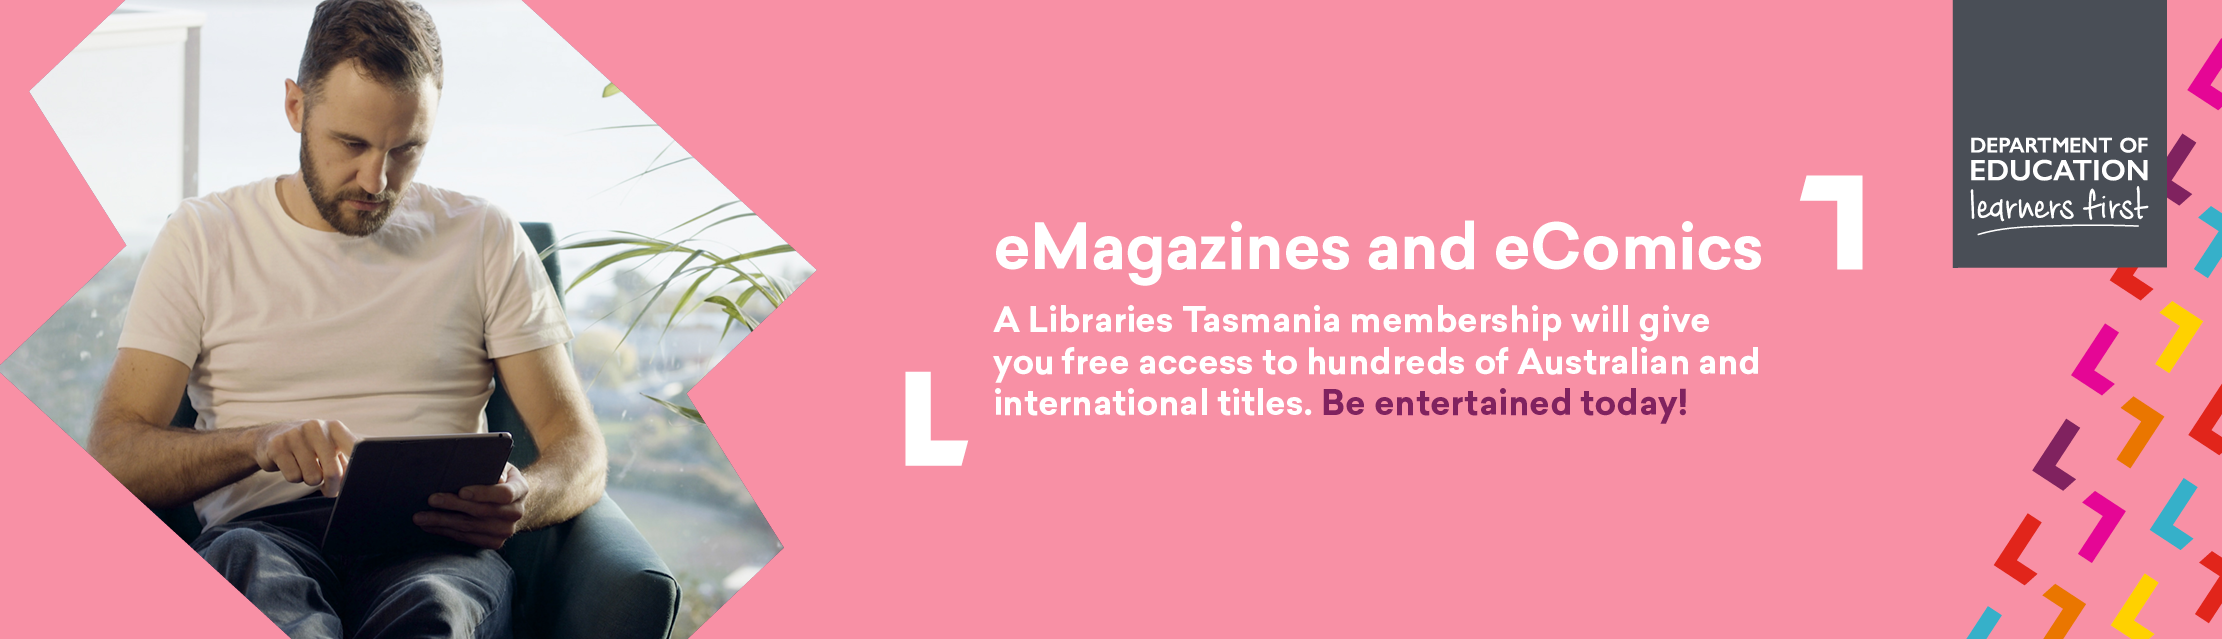 eMagazines and eComics. A Libraries Tasmania membership will give you free acess to hundreds of Australian and international titles. Be entertained today!